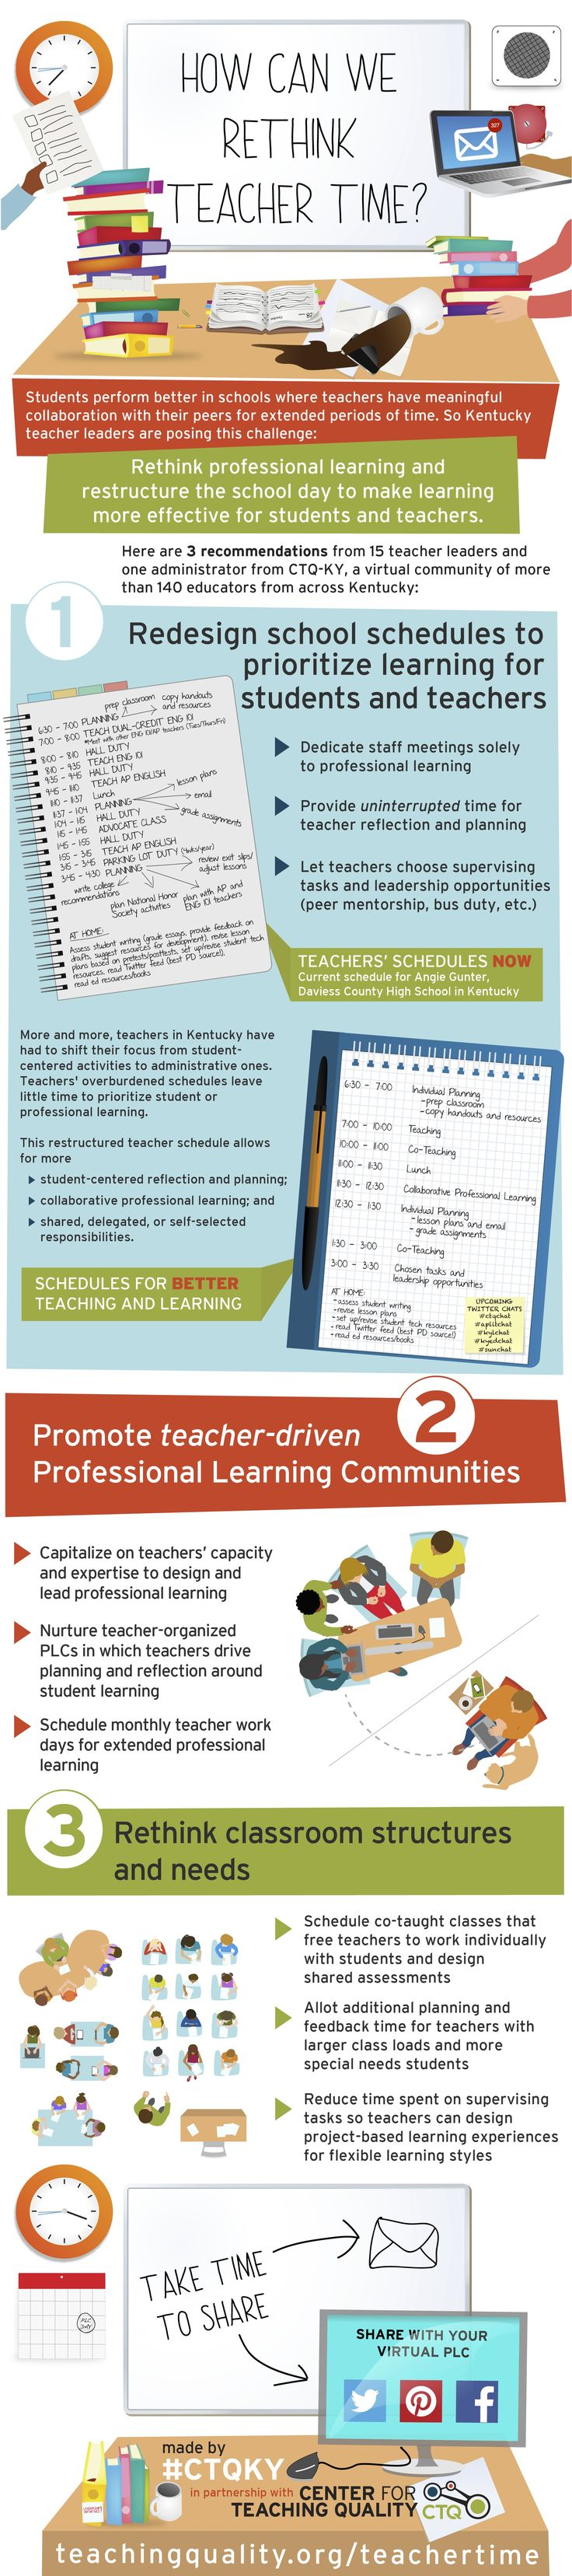 Rethinking Teacher Time Infographic - http://elearninginfographics.com/rethinking-teacher-time-infographic/